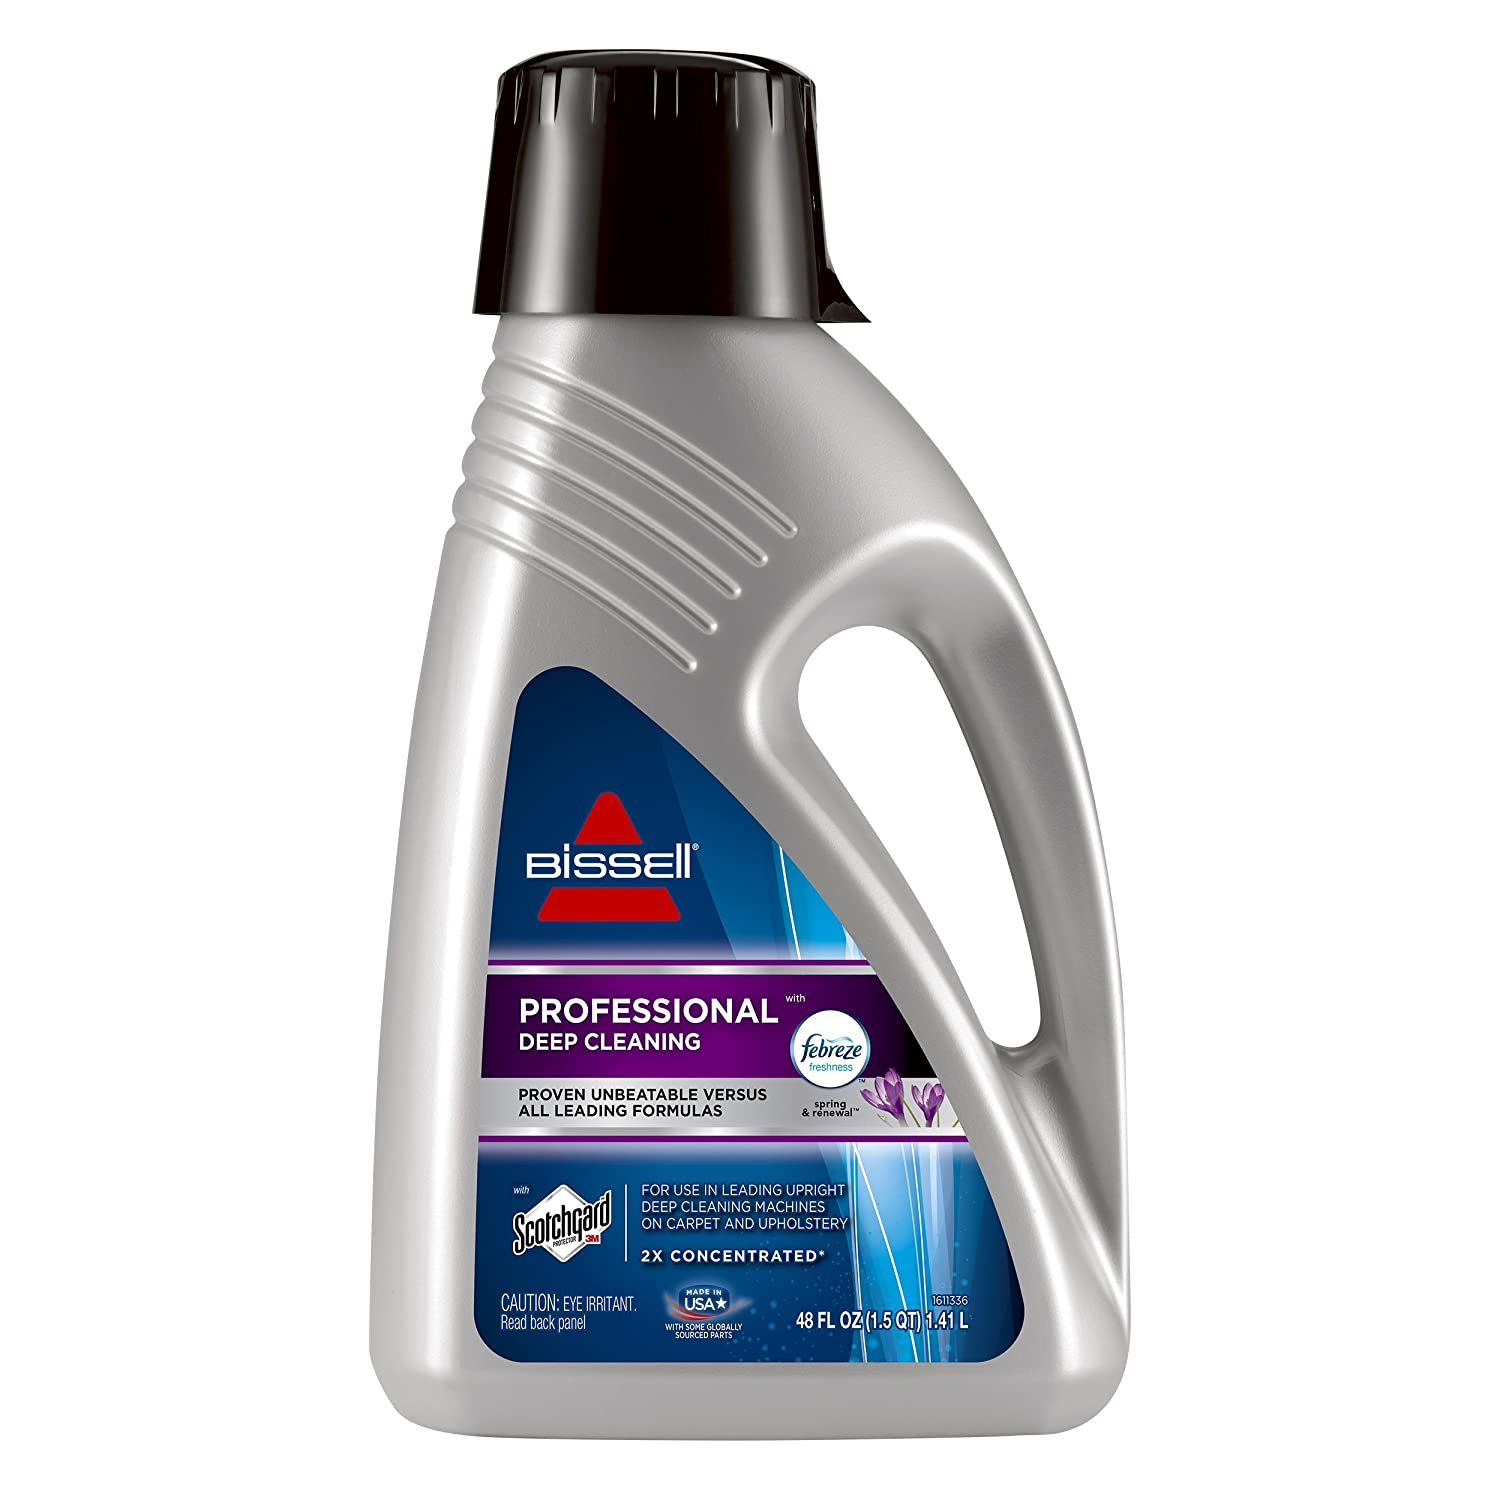 Bissell Professional Deep Cleaning with Febreze Freshness Spring & Renewal, 2515A, 48 Ounces Carpet Ceaning Formula 48 oz